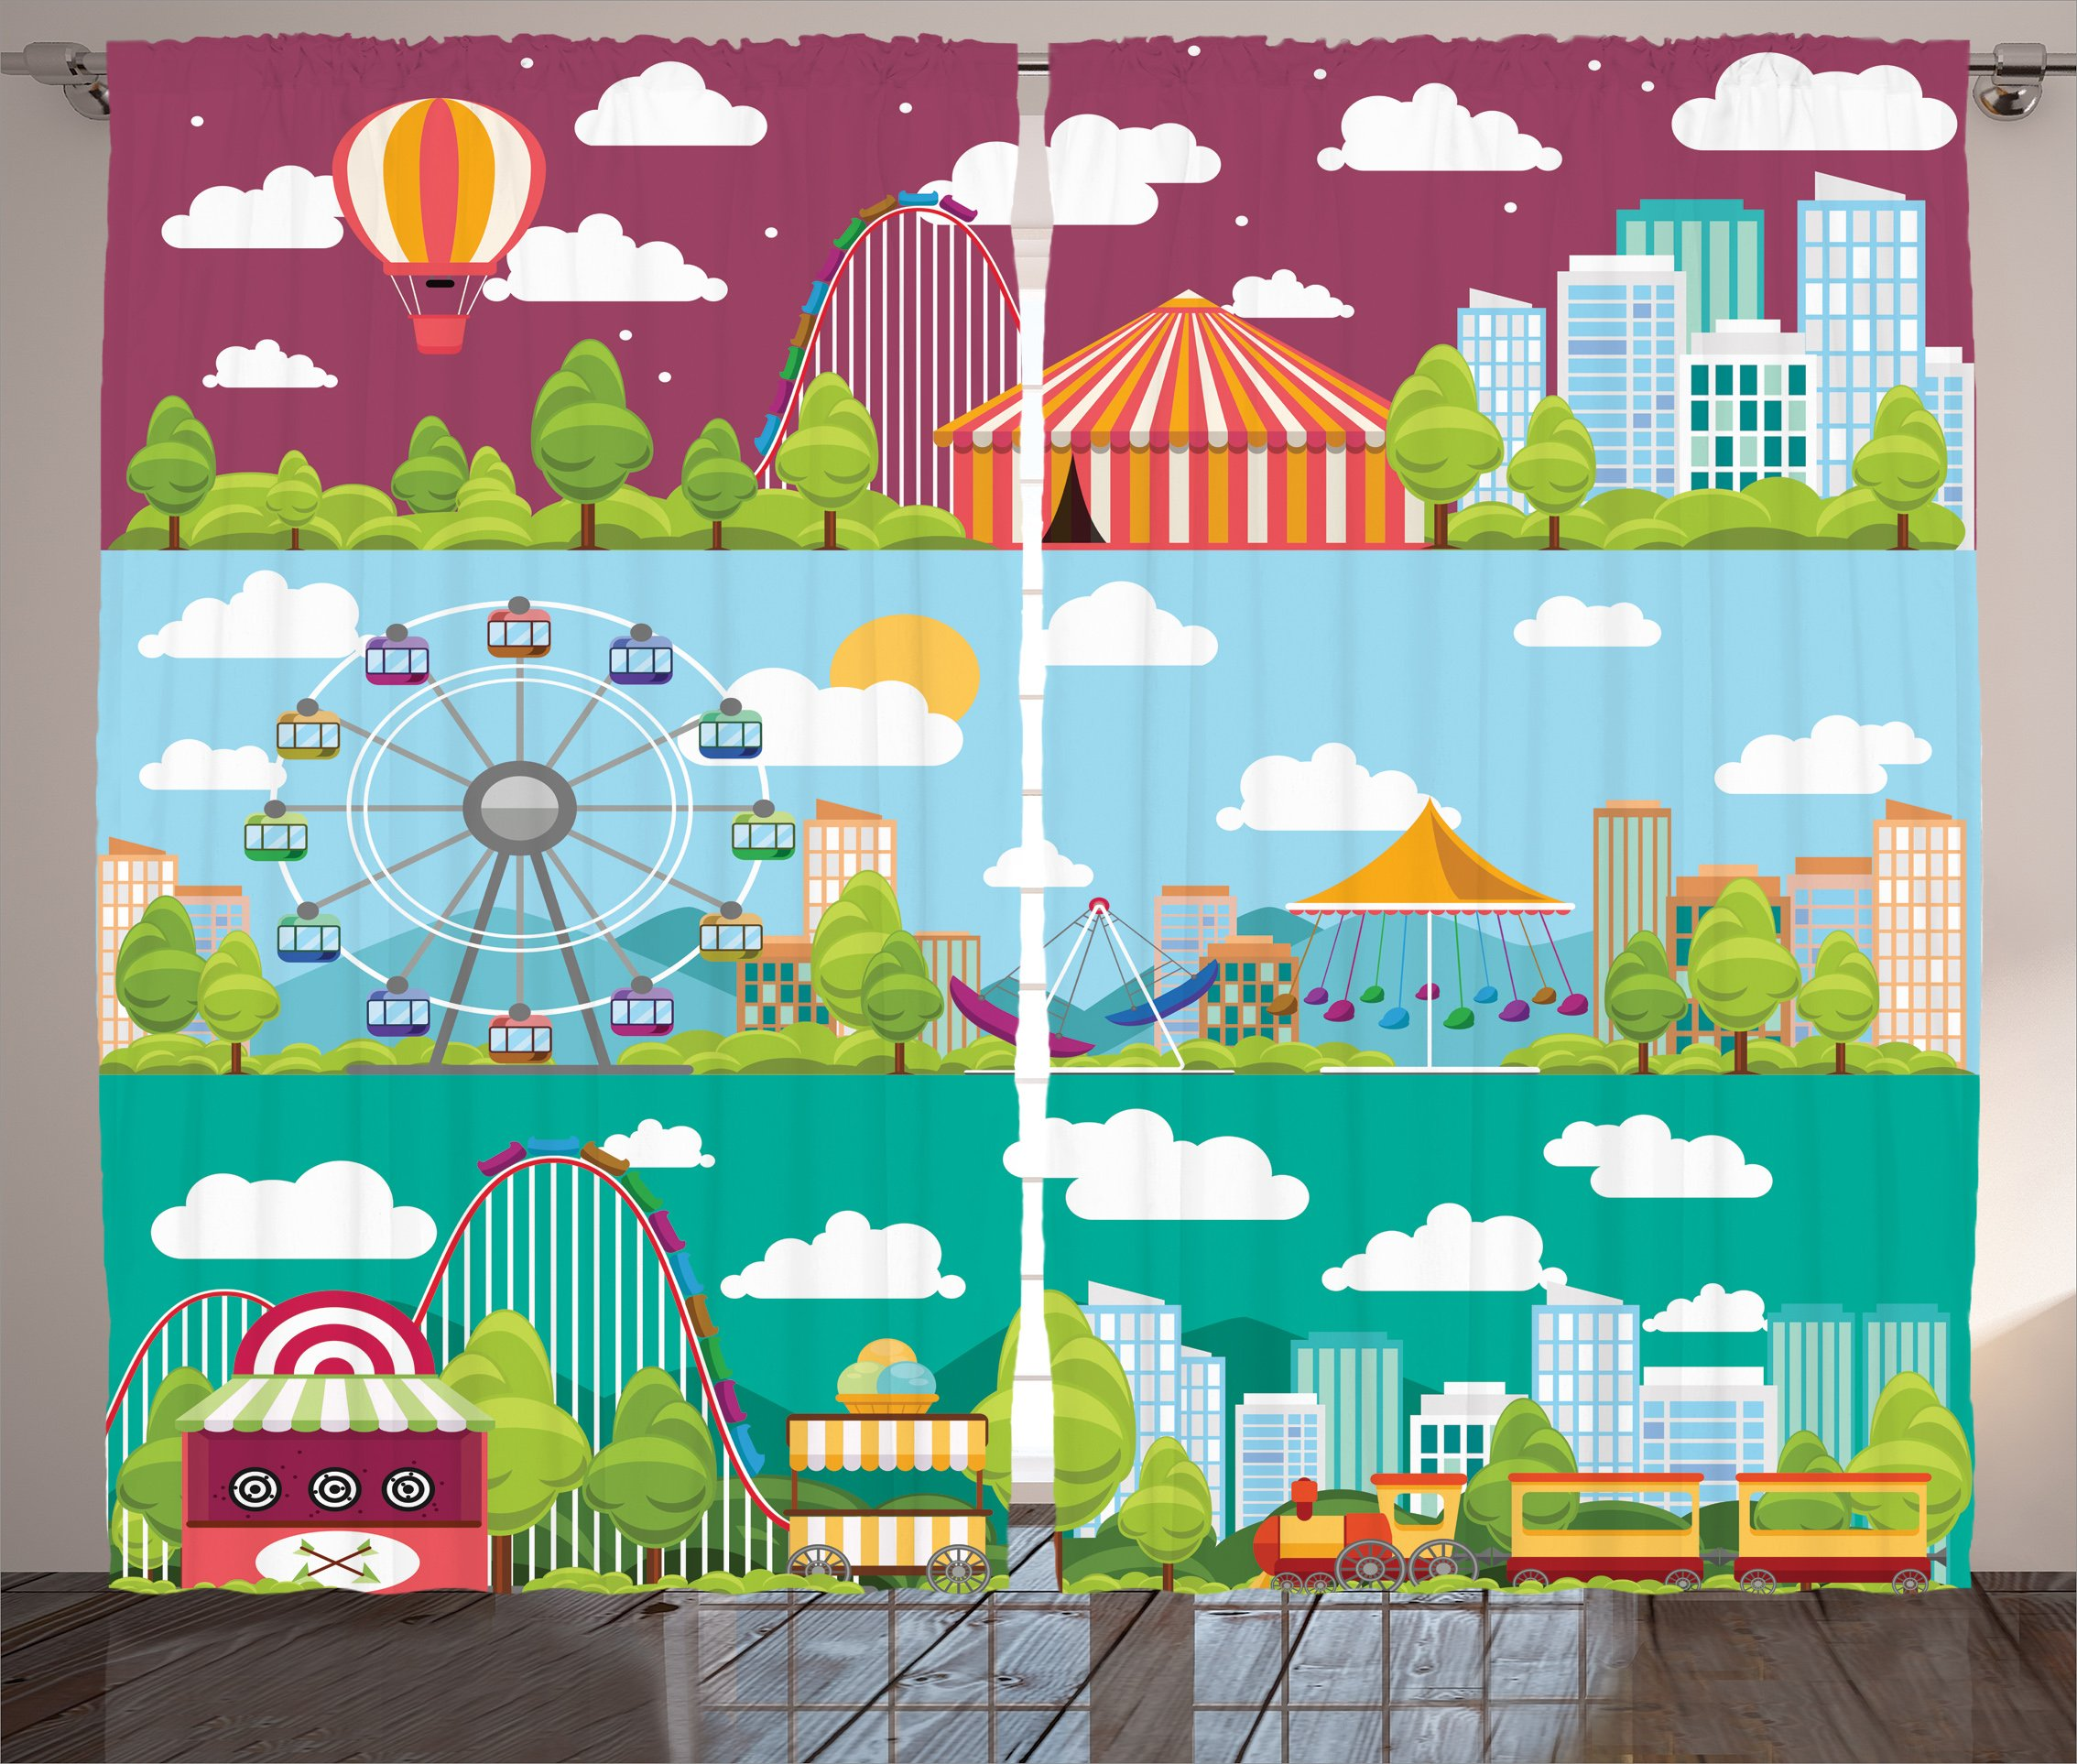 Ambesonne Circus Decor Curtains, Conceptual City Banners with Carousels Slides and Swings Ferris Wheel Attraction, Window Treatments for Kids Girls Boys Bedroom 2 Panels Set, 108X63 inches